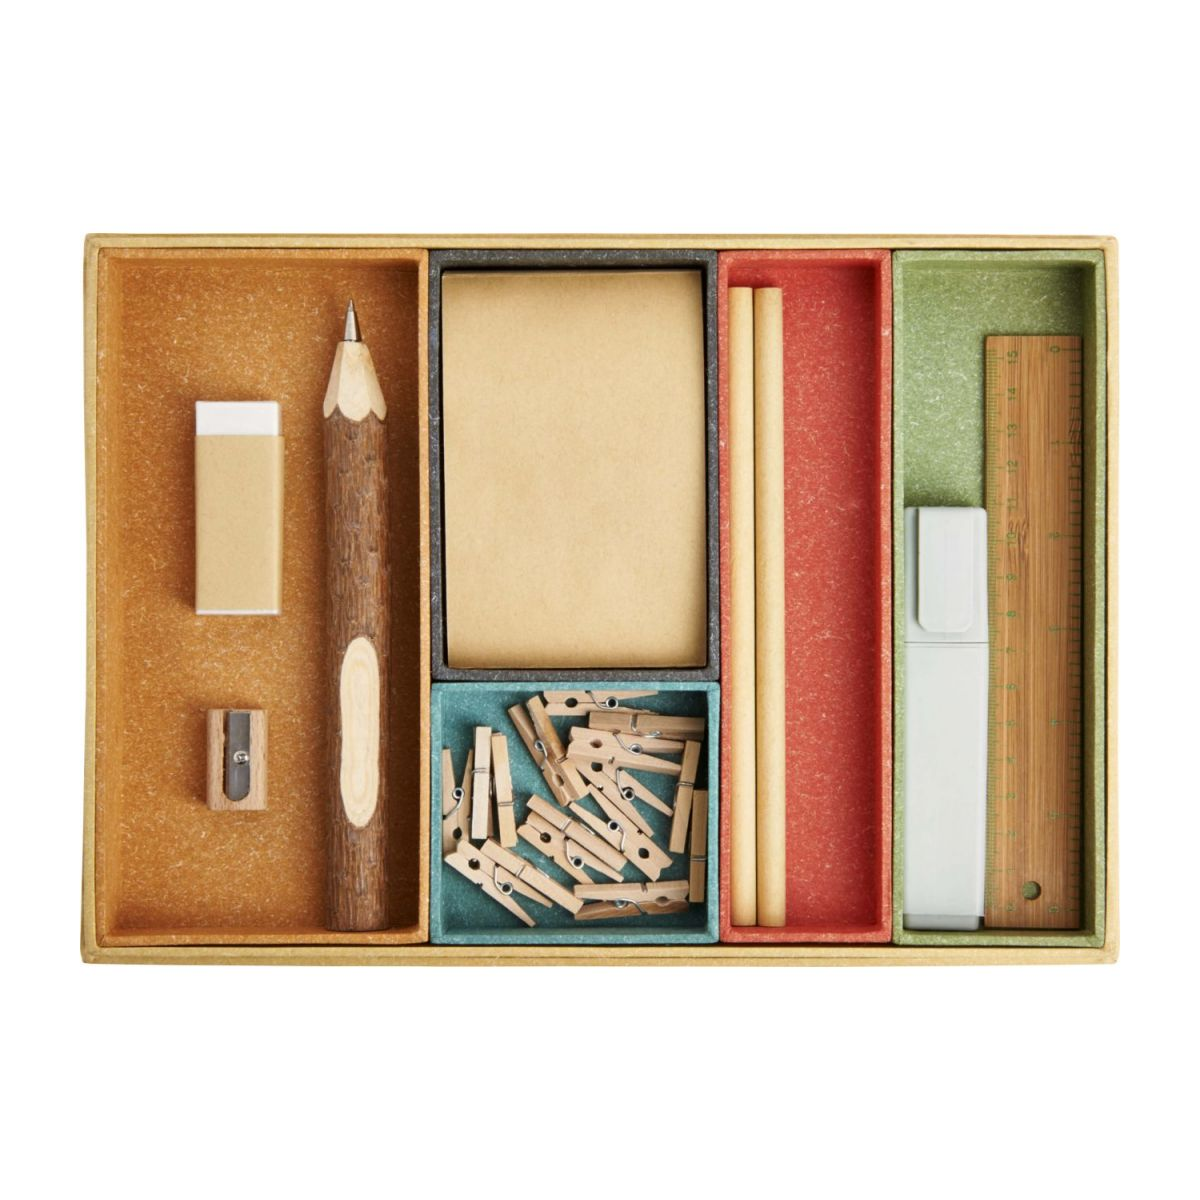 Stationery box (10 pieces) n°4